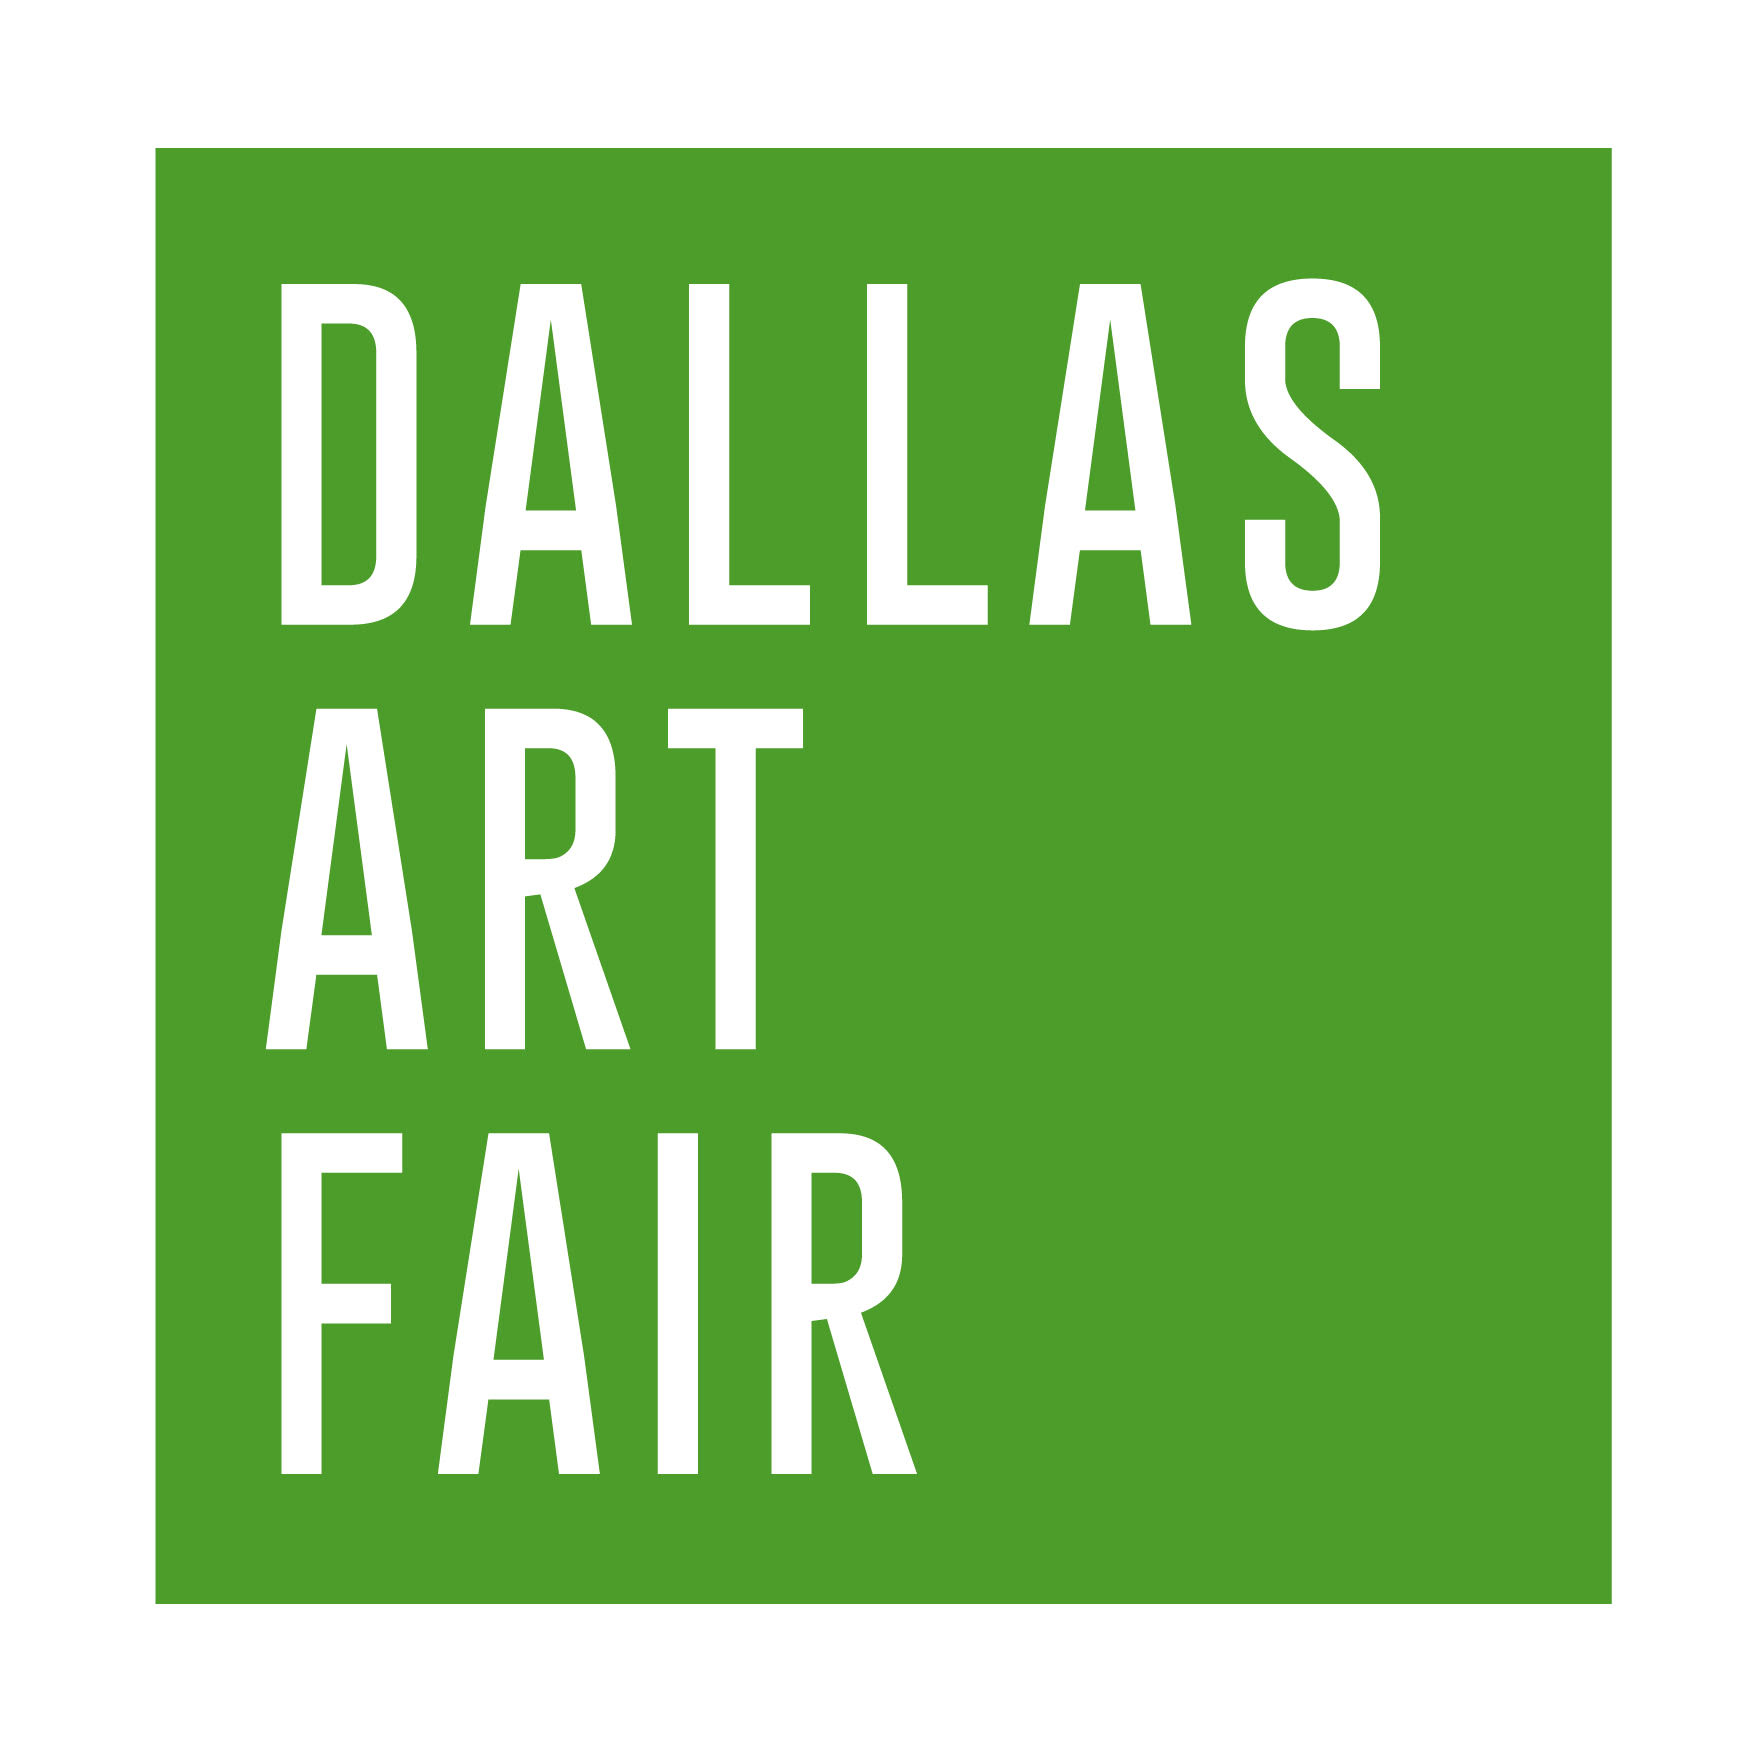 DALLAS ART FAIR